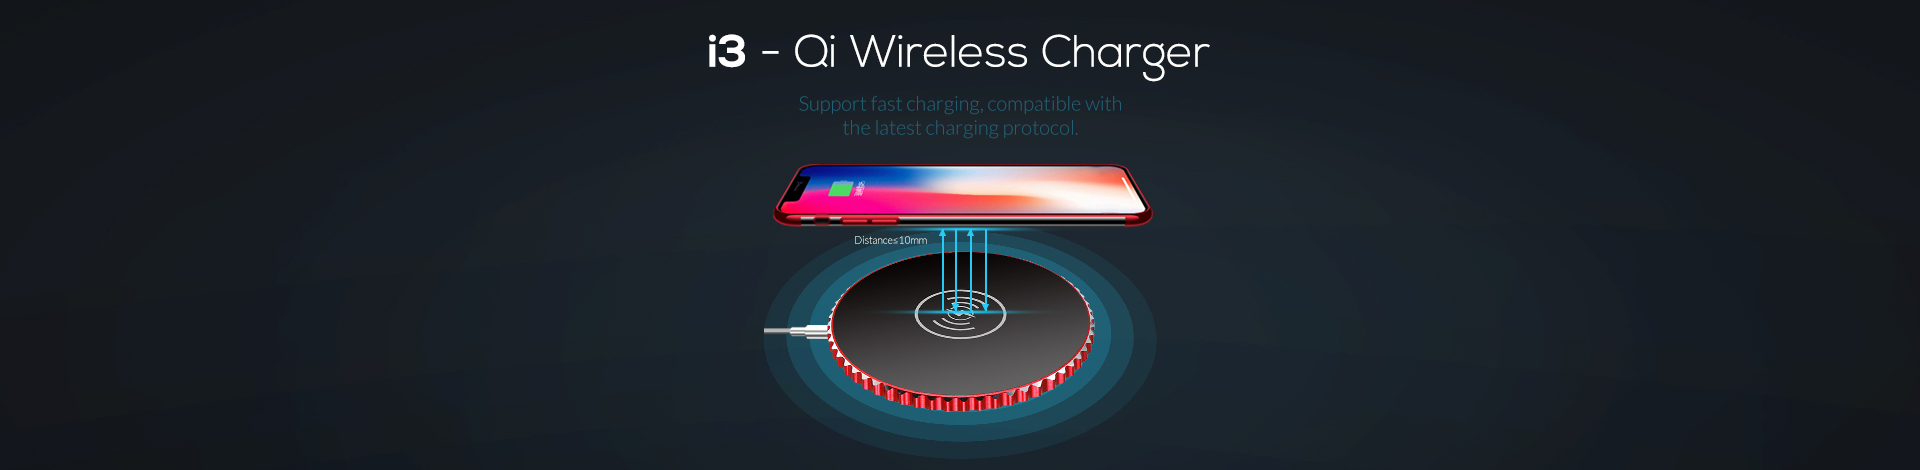 I3 - Qi Wireless Charger